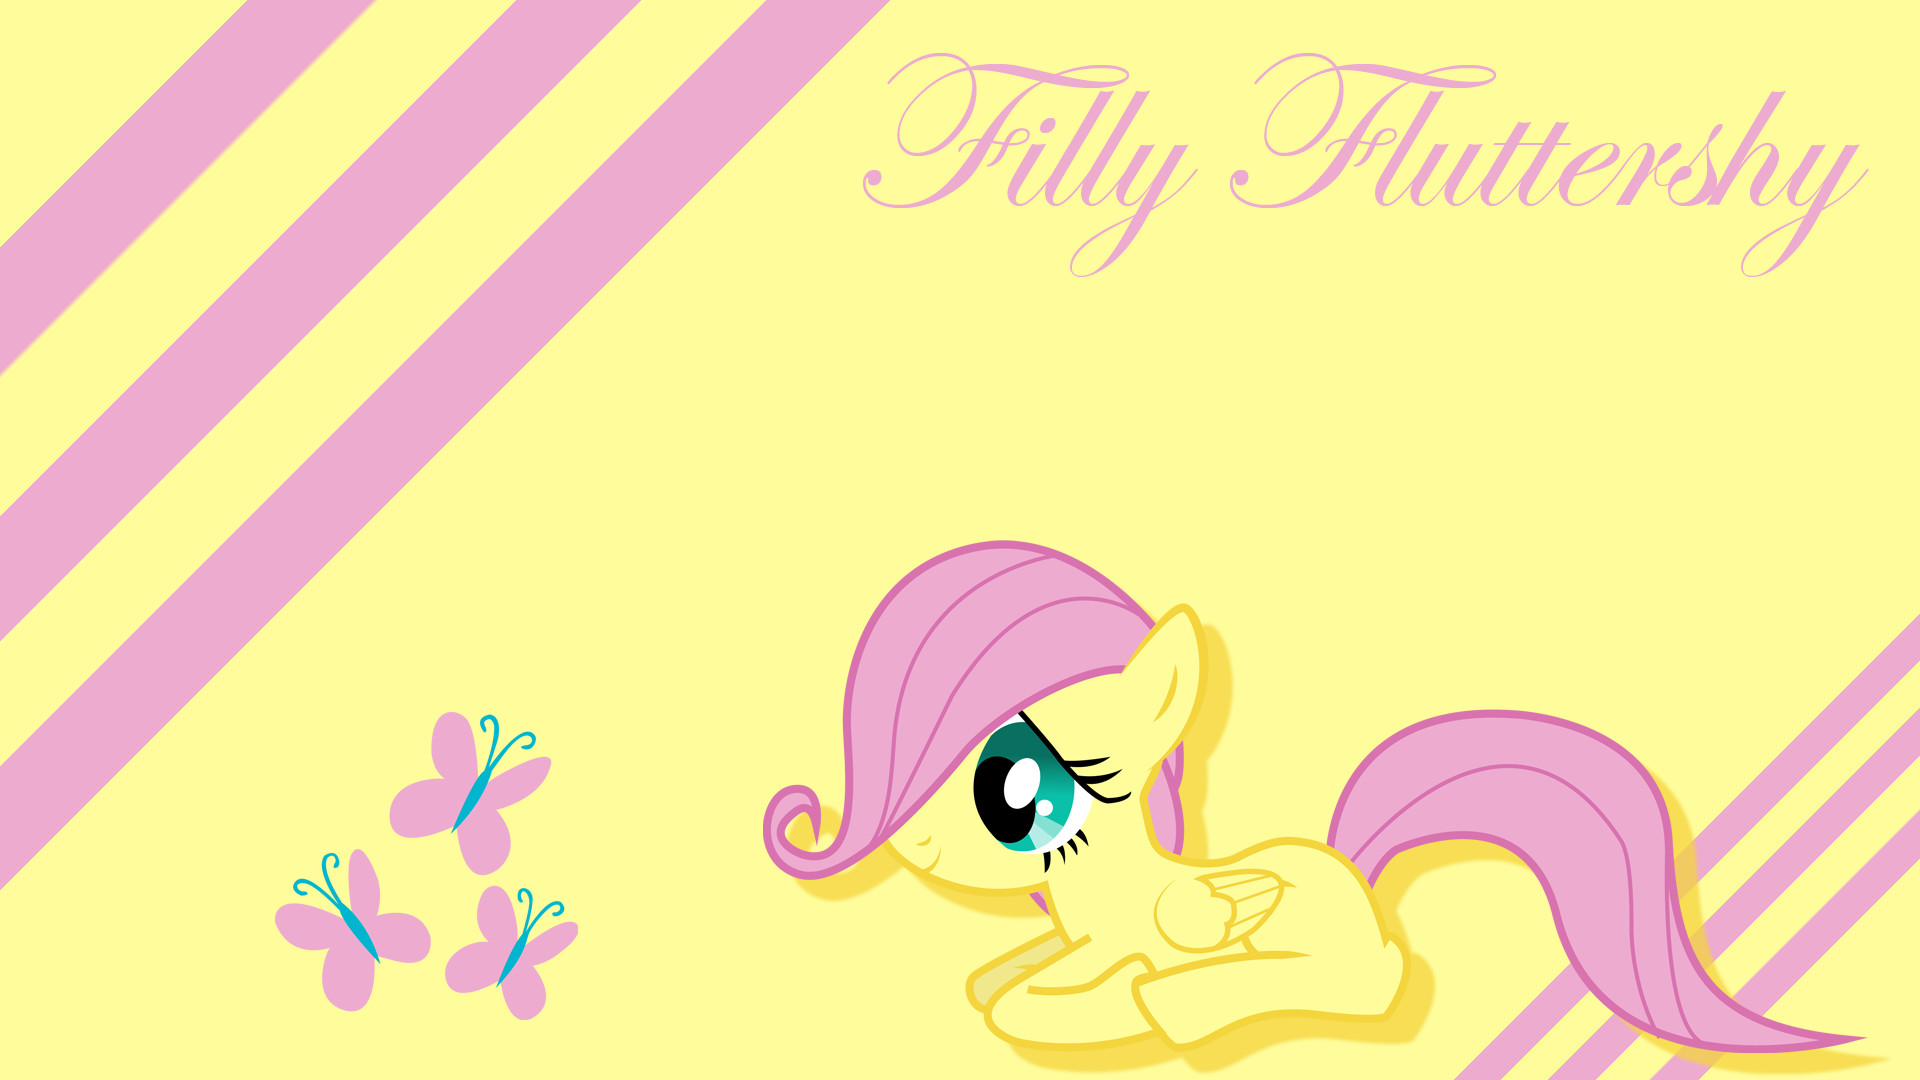 1920x1080 Filly Fluttershy Wallpaper by Silentmatten Filly Fluttershy Wallpaper by  Silentmatten